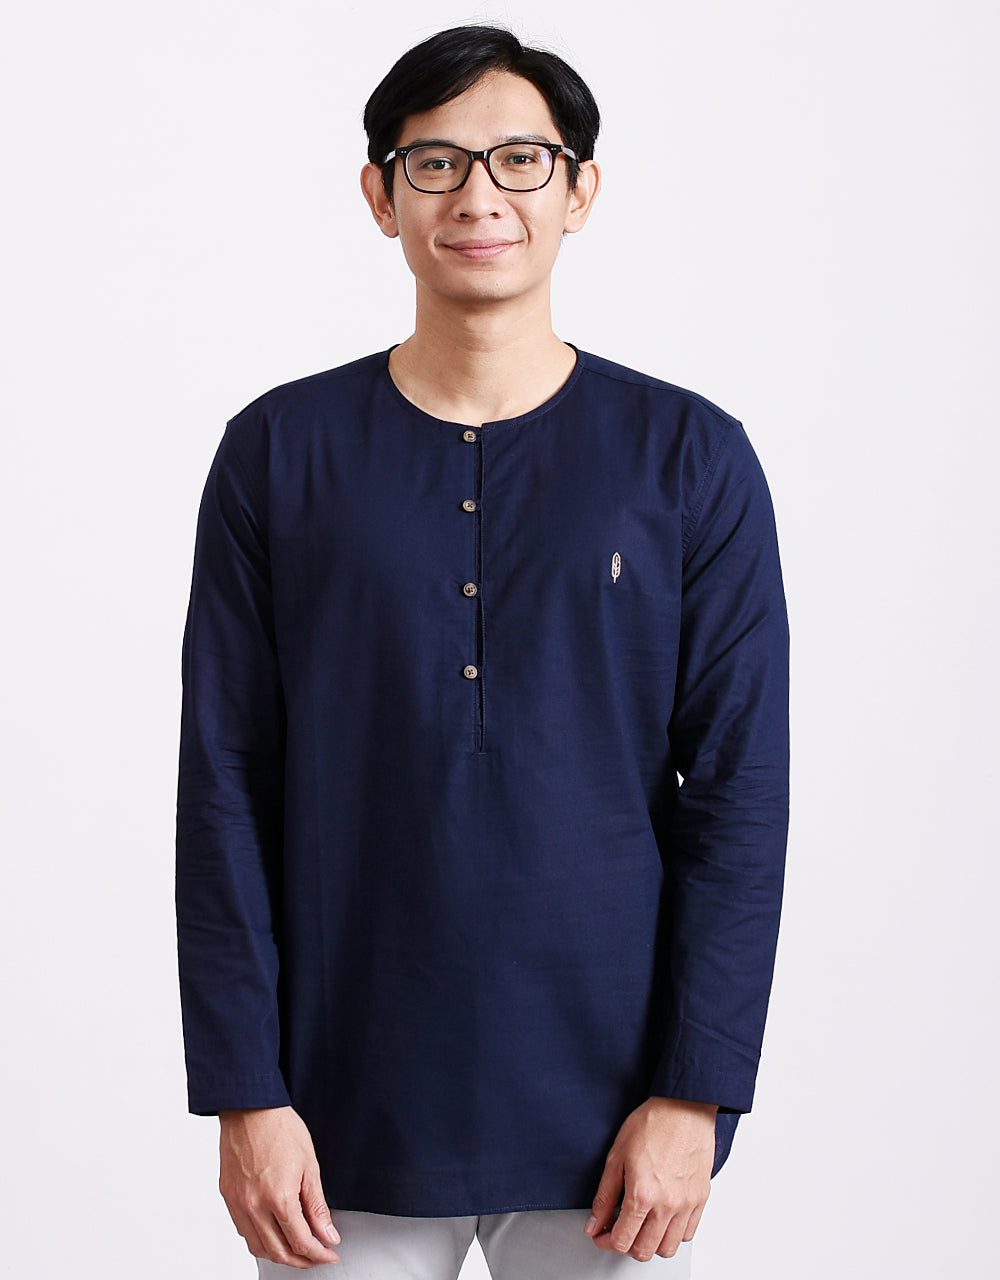 Reverence 2 Kurta Shirt